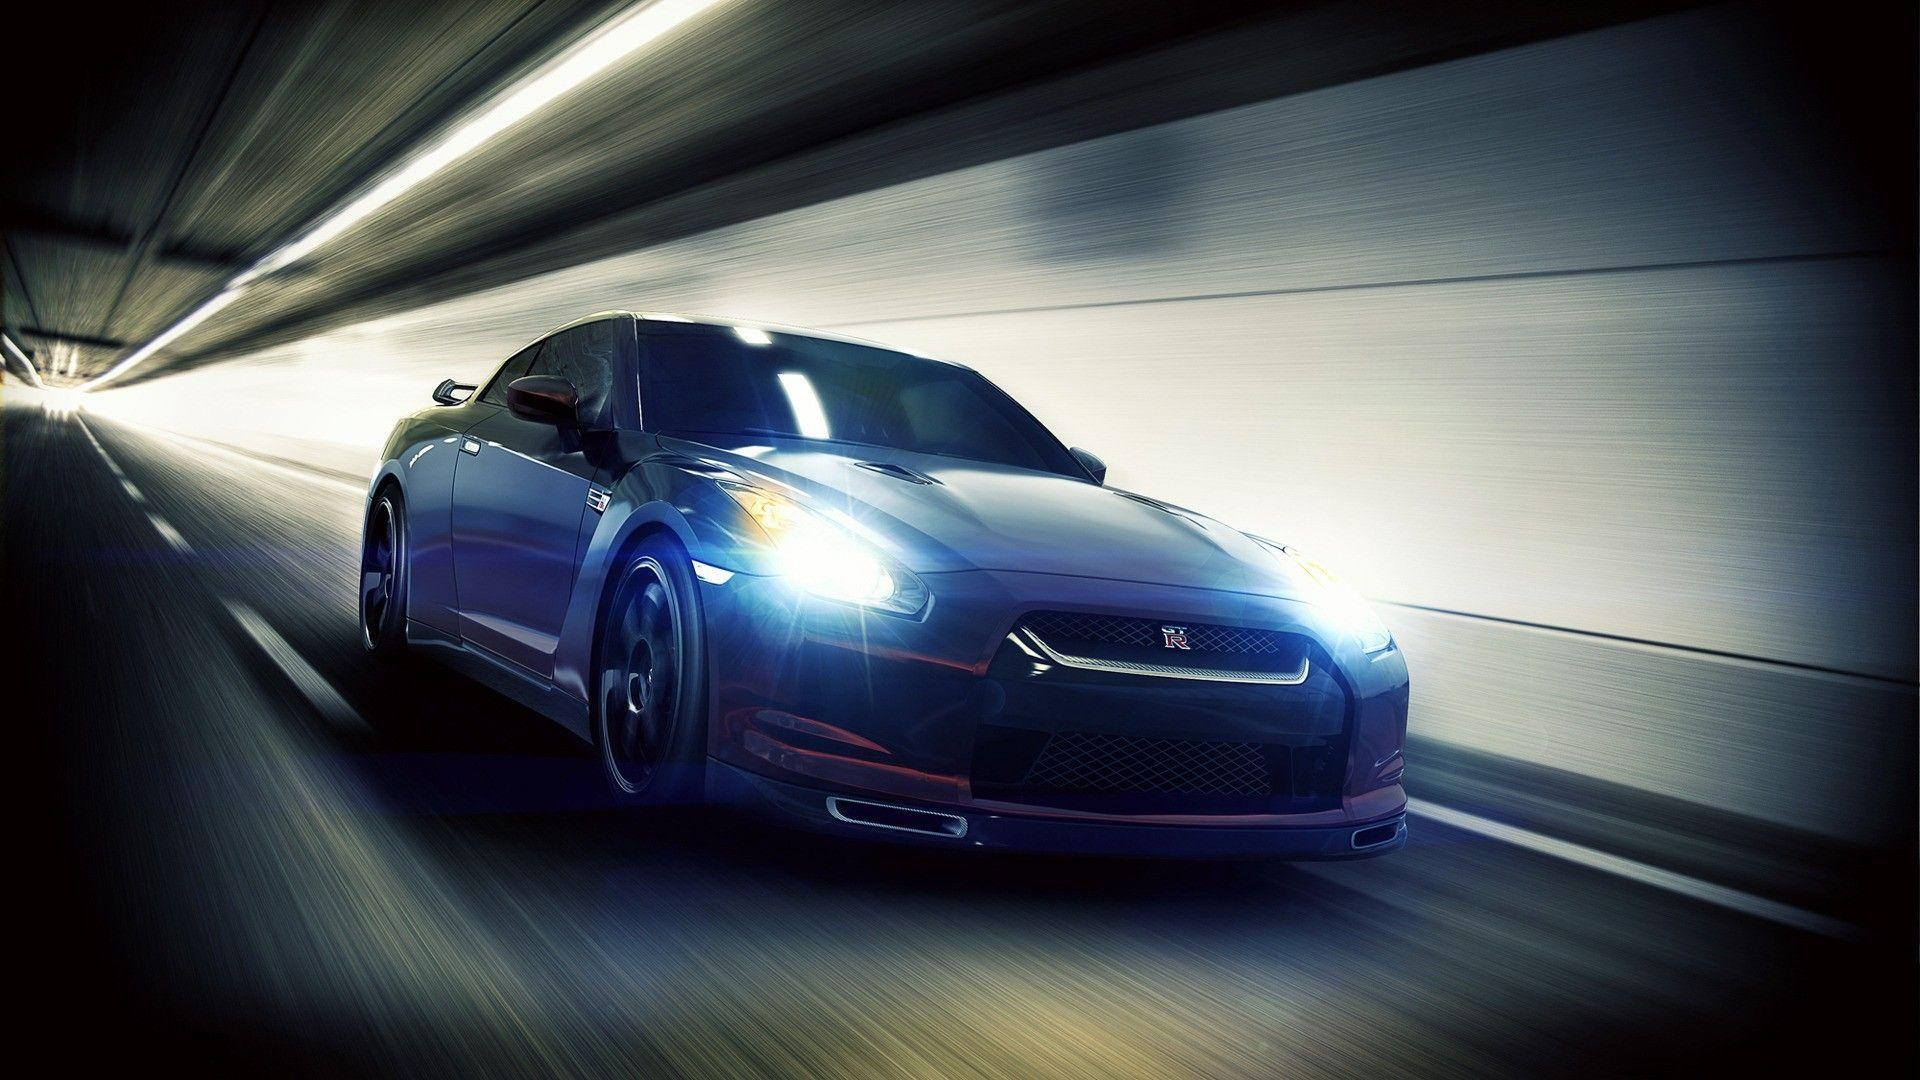 Neon Nissan GT-R Cars Wallpaper HD #5172 Wallpaper | High ...